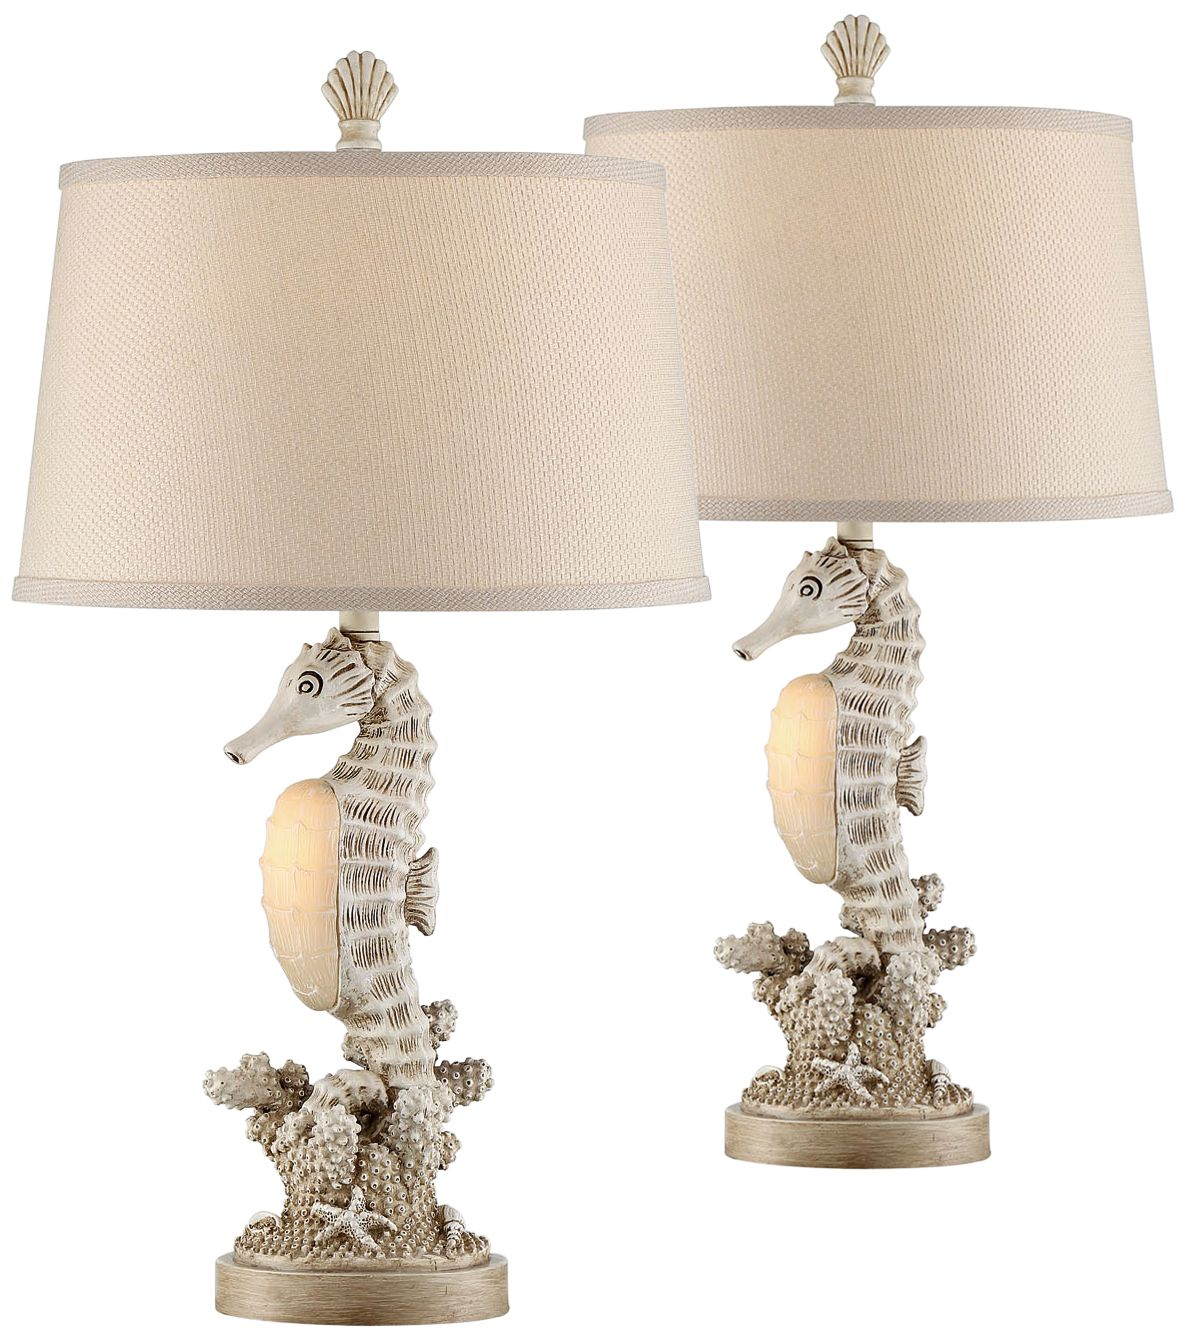 Gentil Seahorse Antique Night Light Table Lamps Set Of 2